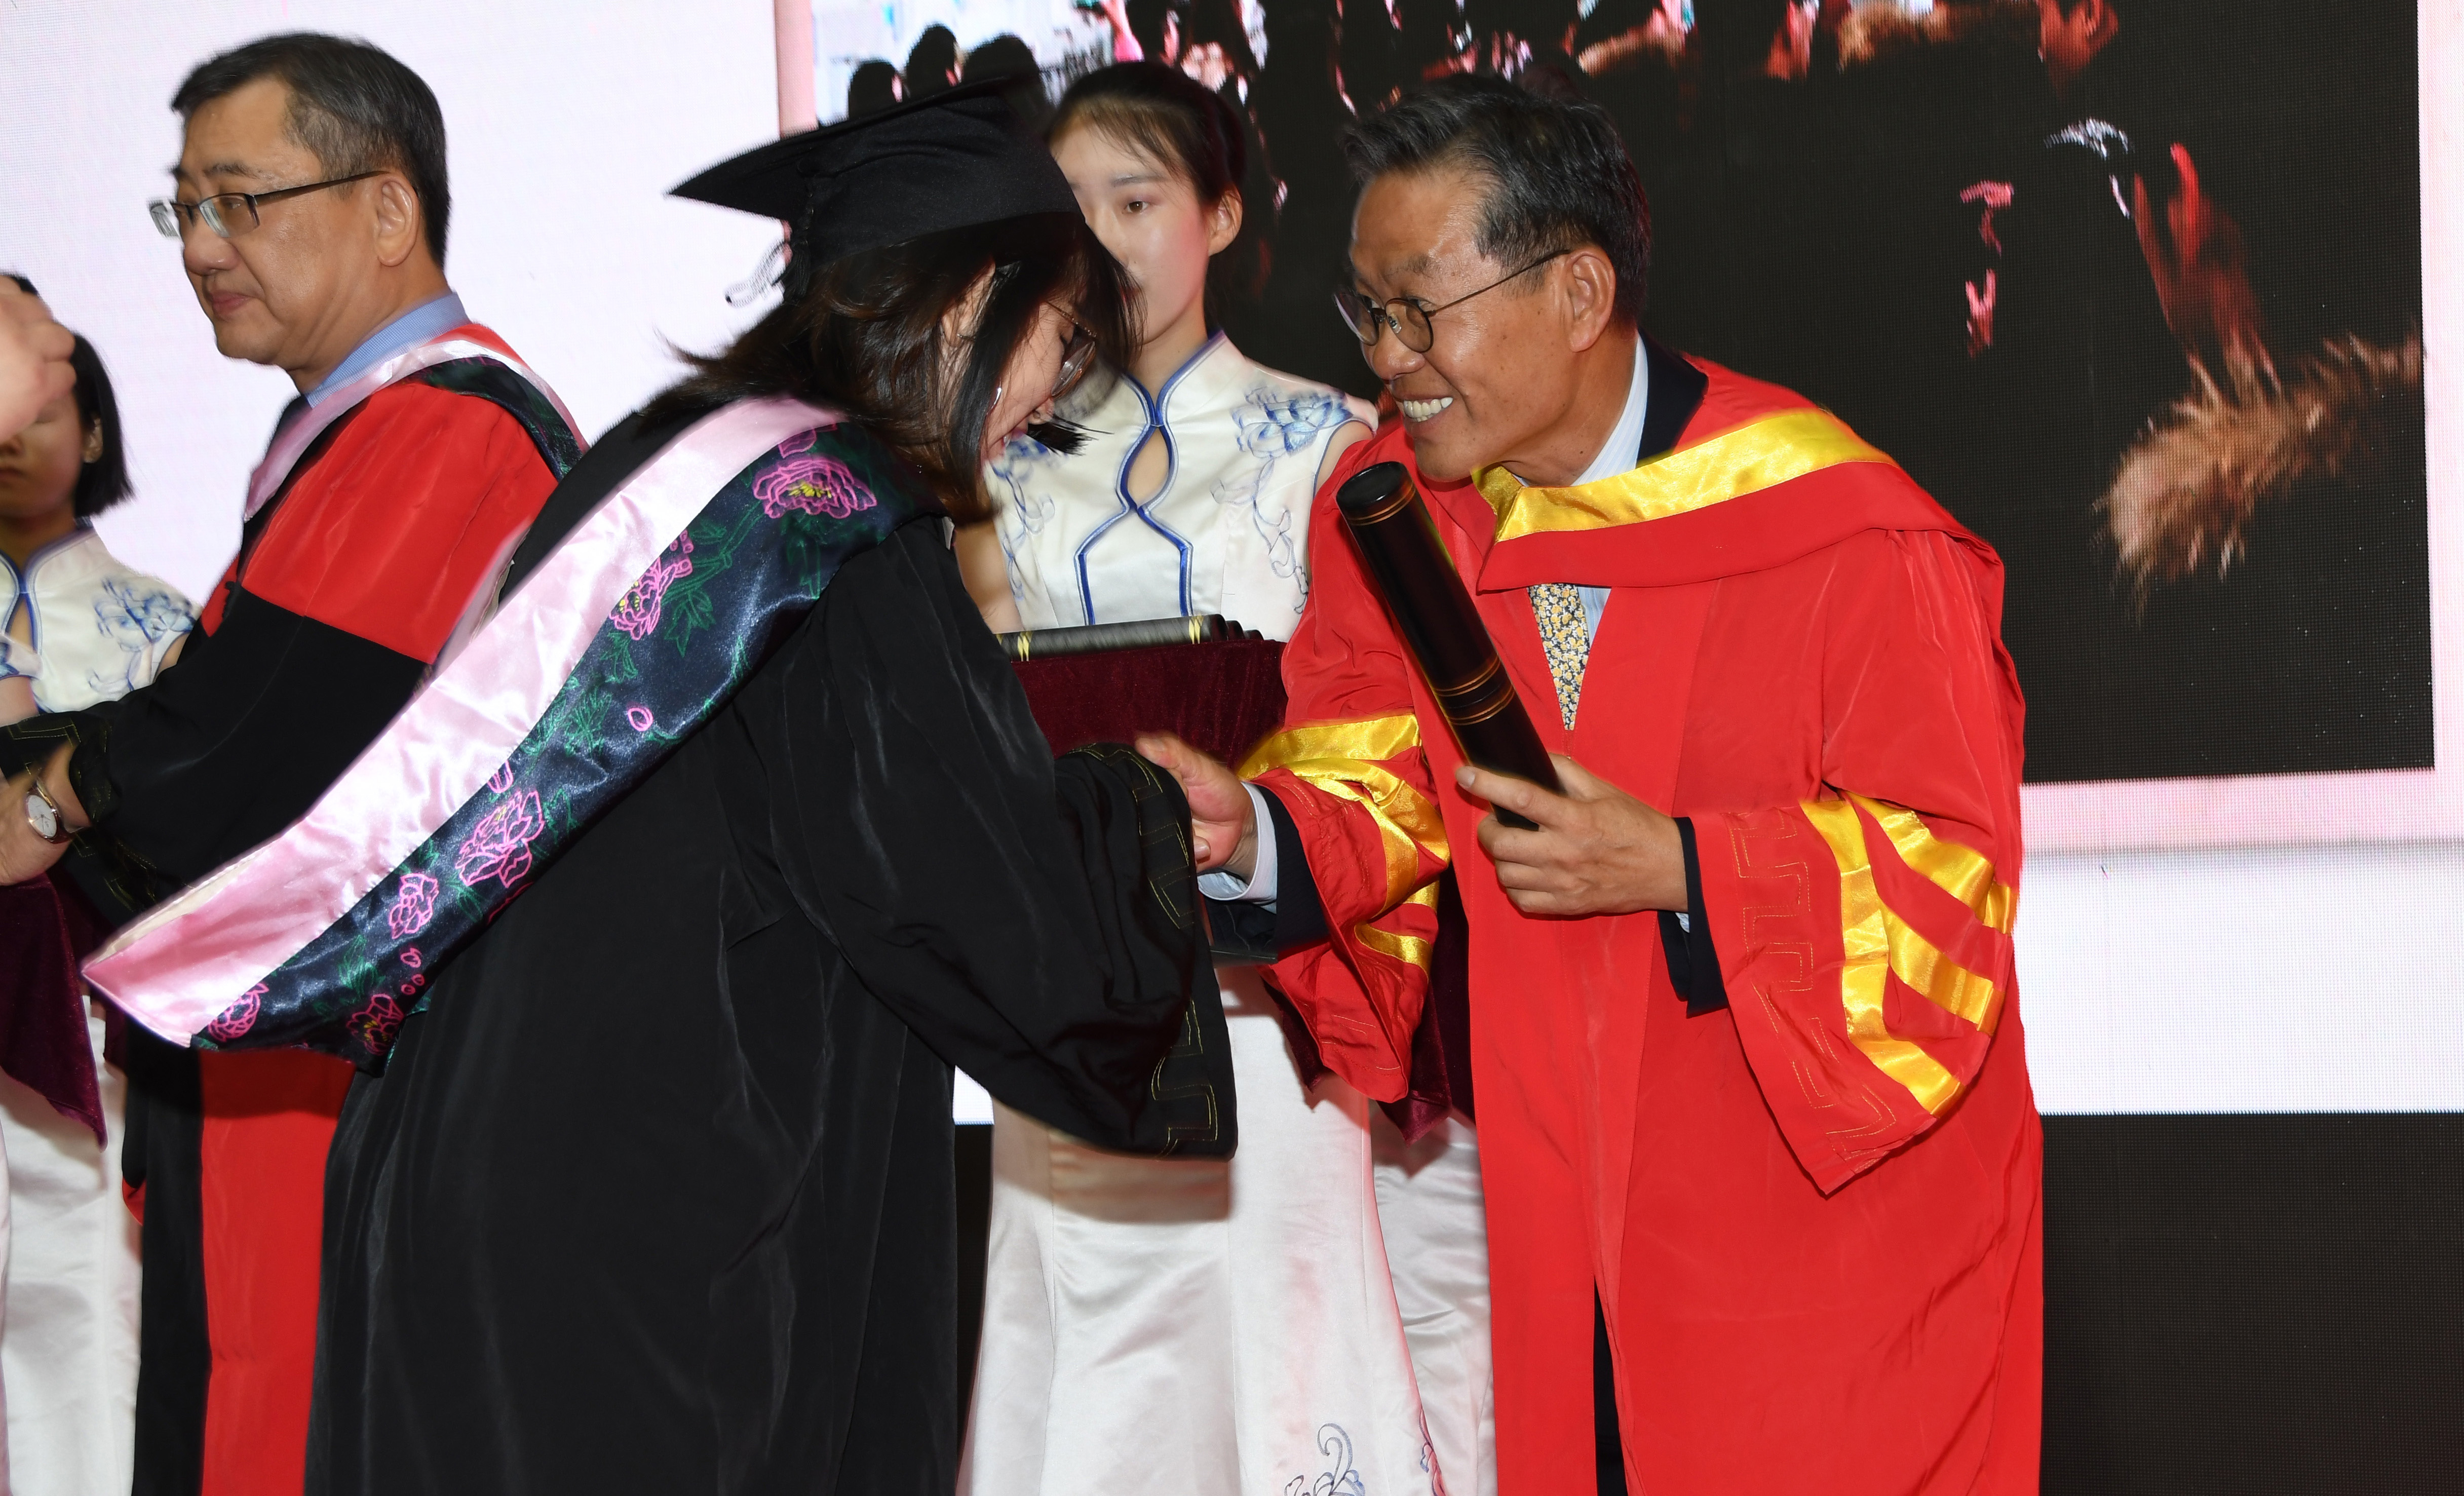 Dr. Youngski Kwak, DSU professor of accounting, presents a diploma to one of the graduates.